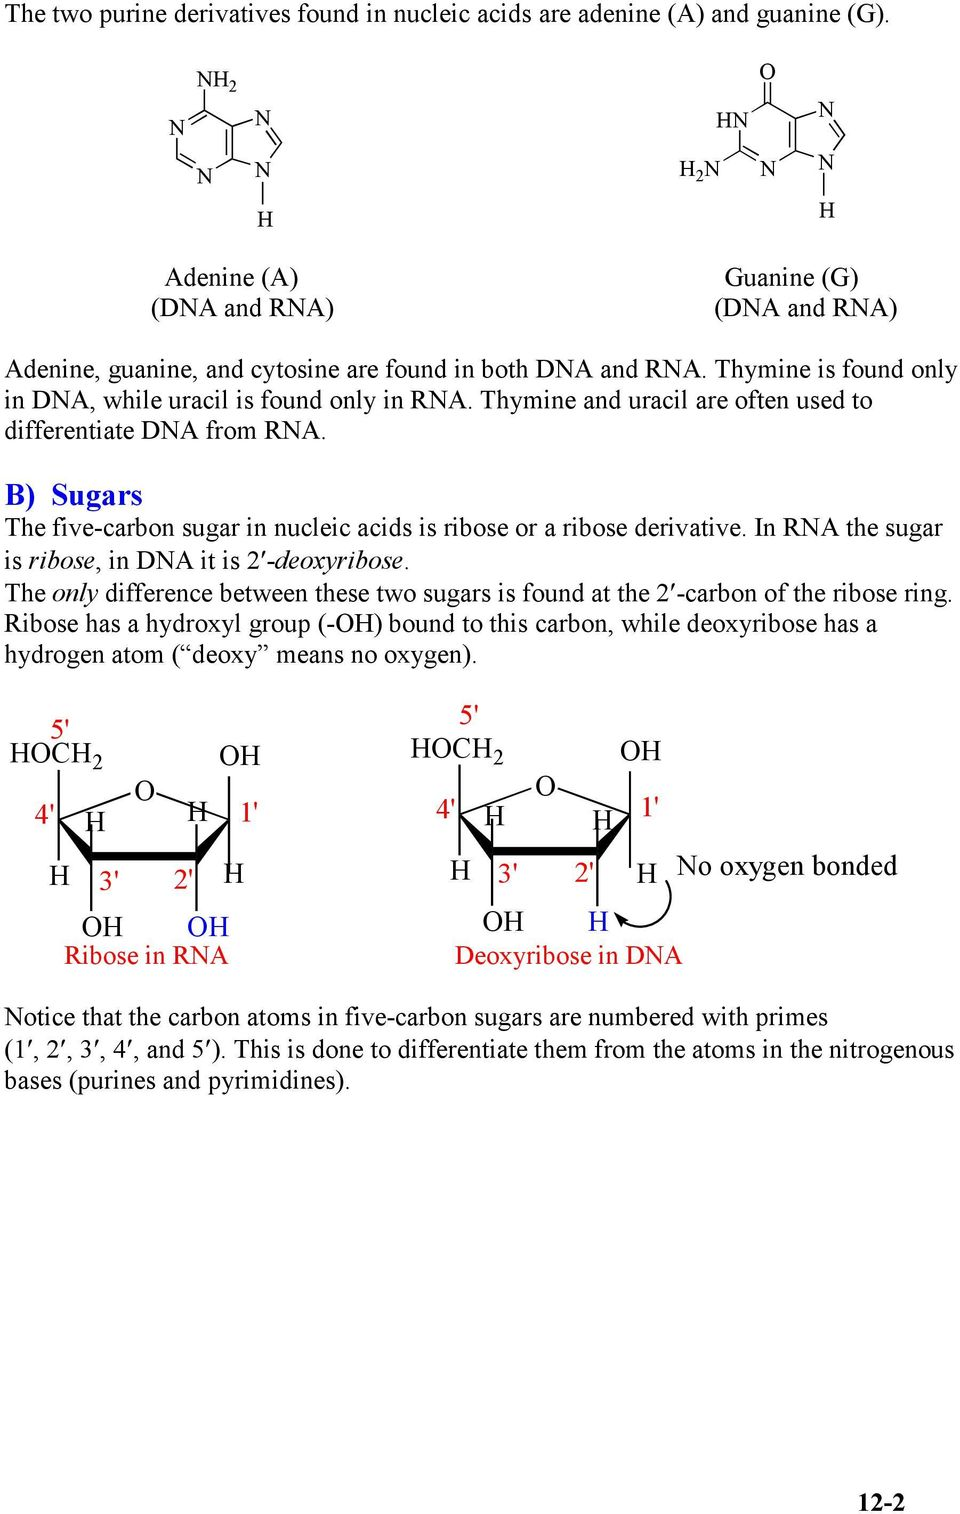 B) ugars The five-carbon sugar in nucleic acids is ribose or a ribose derivative. In RA the sugar is ribose, in DA it is 2 -deoxyribose.